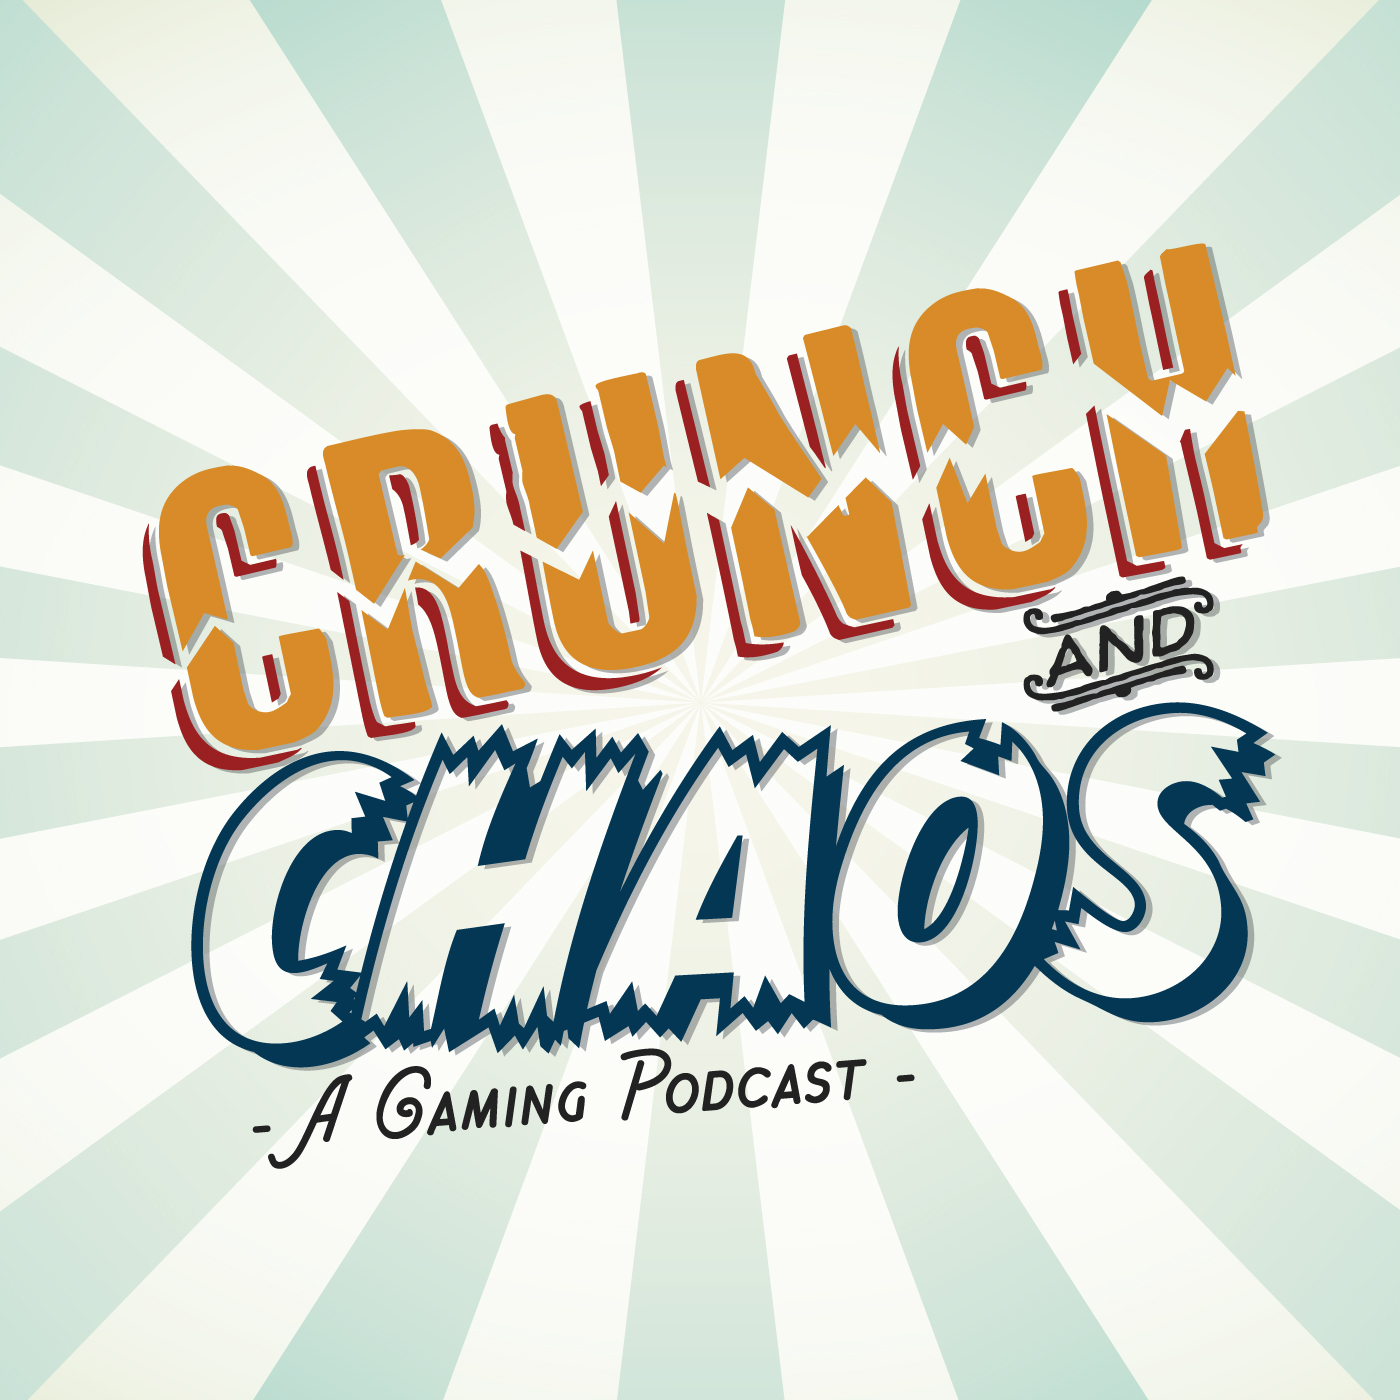 Crunch & Chaos - A gaming podcast